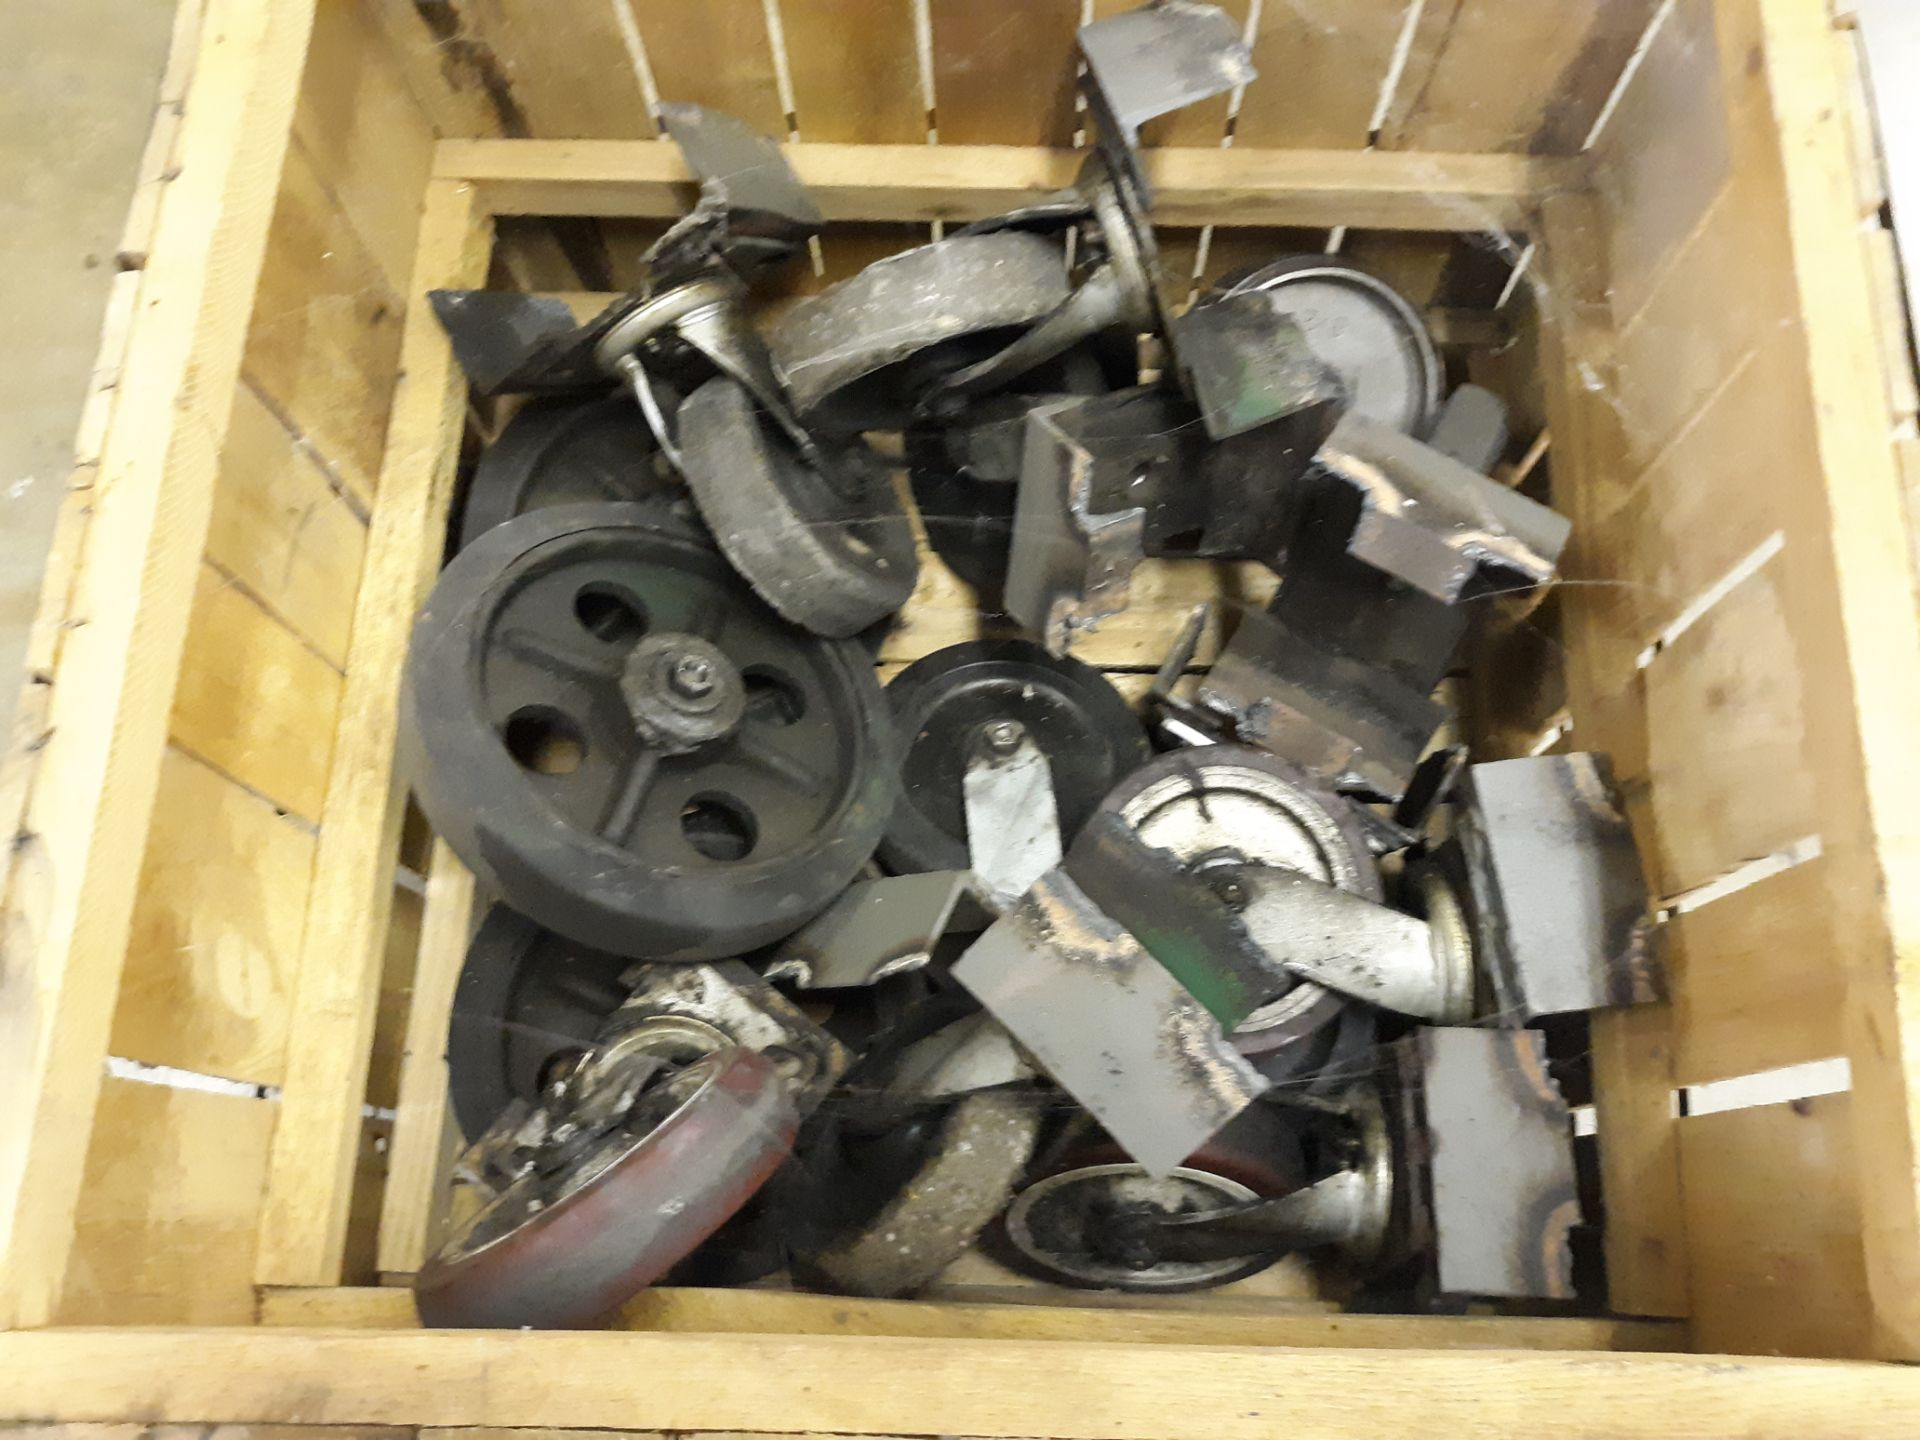 Lot 49 - CRATE OF CASTERS (LOCATED AT: 570 S. MAIN STREET, CHURUBUSCO, IN 46723) RIGGING FEE: $10